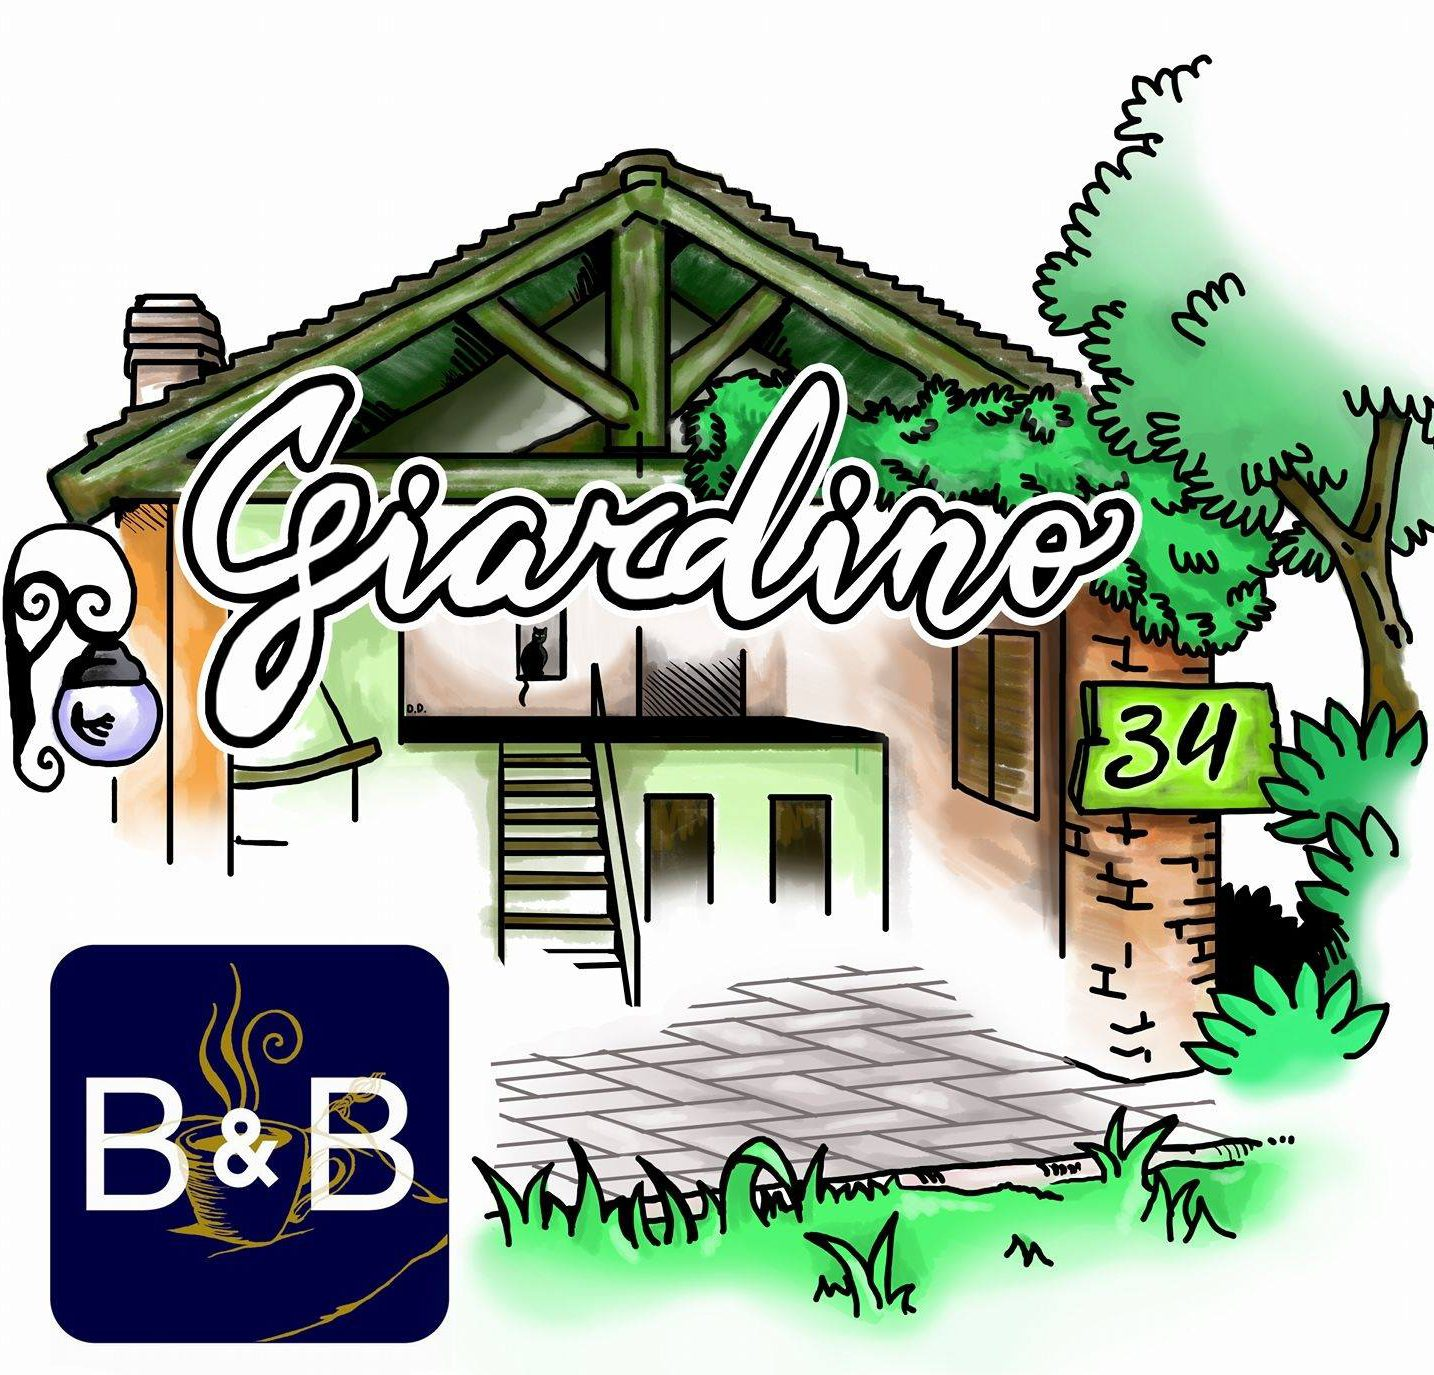 Bed and Breakfast Giardino 34